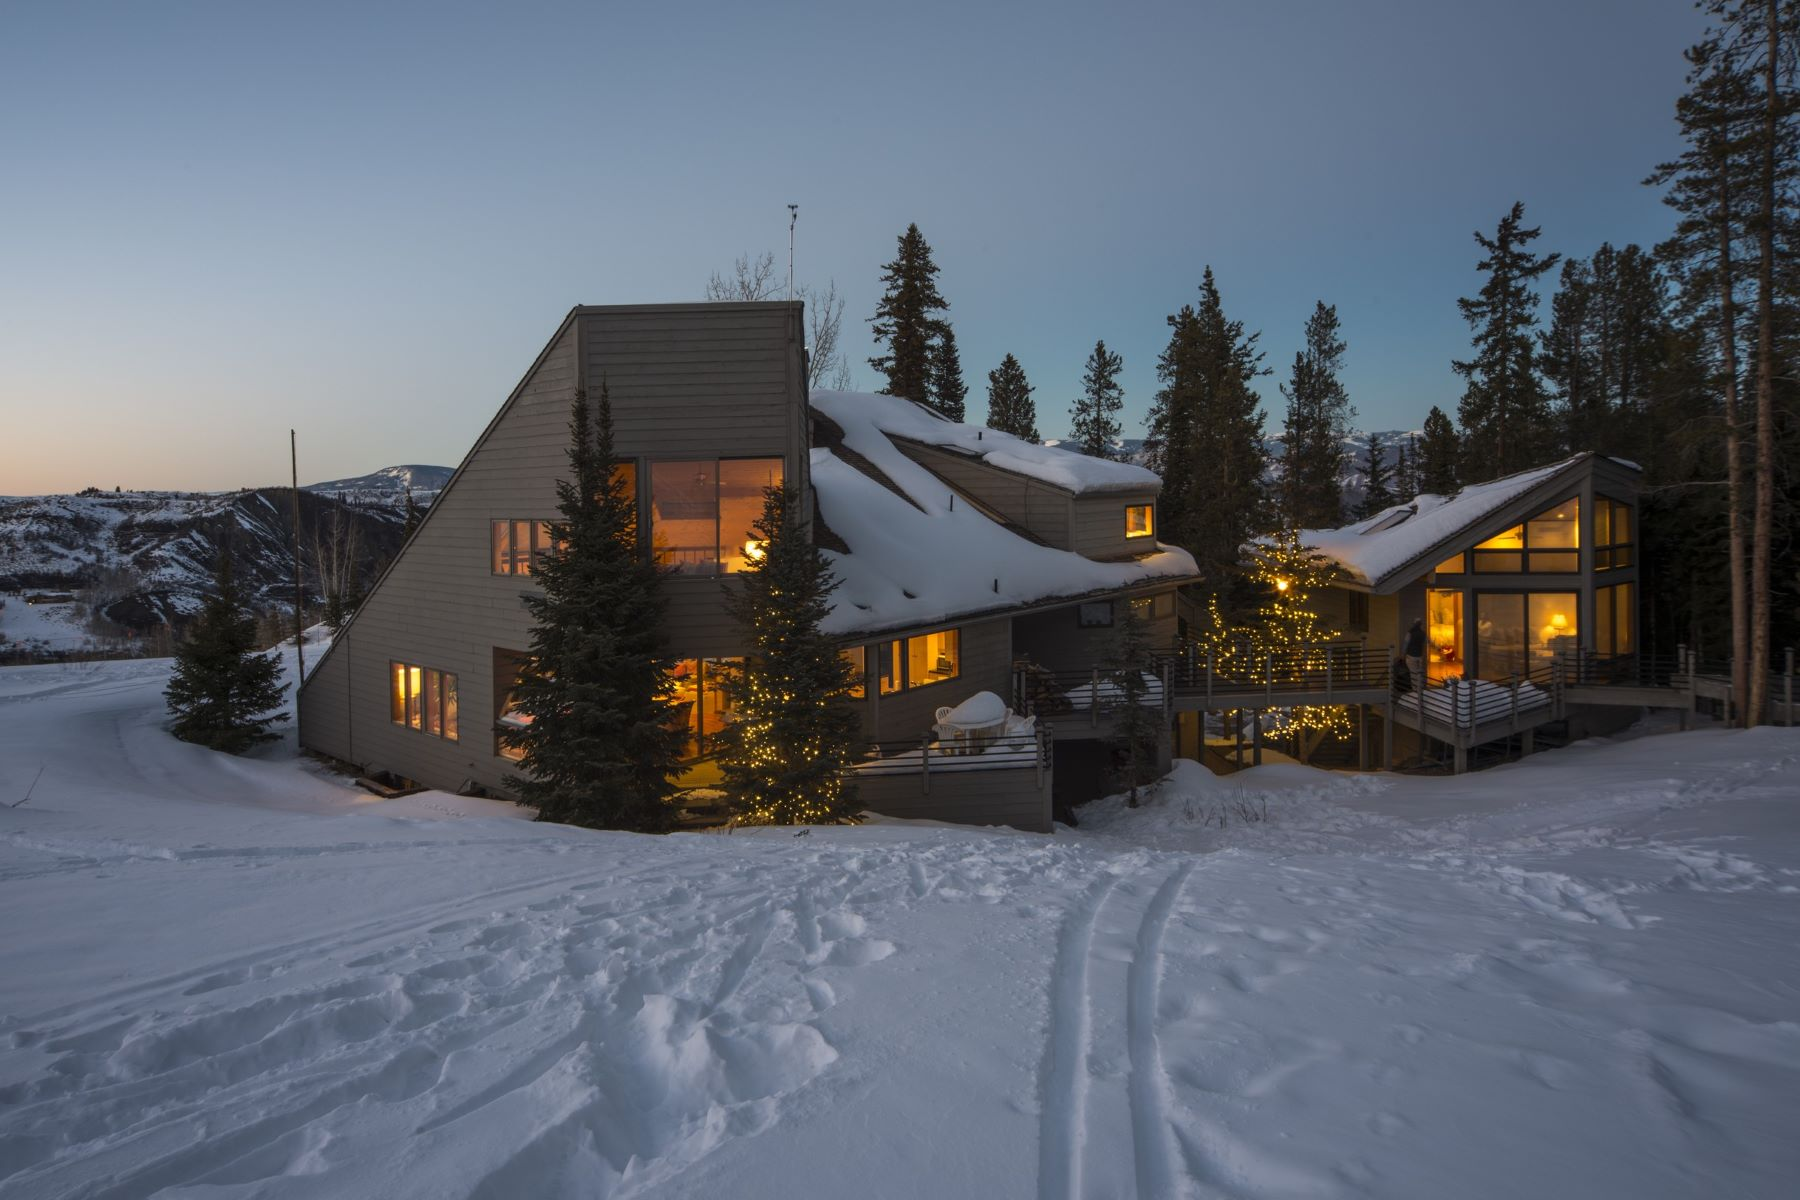 Single Family Homes for Active at Snowmass Summit House 85 Pine Lane Snowmass Village, Colorado 81615 United States